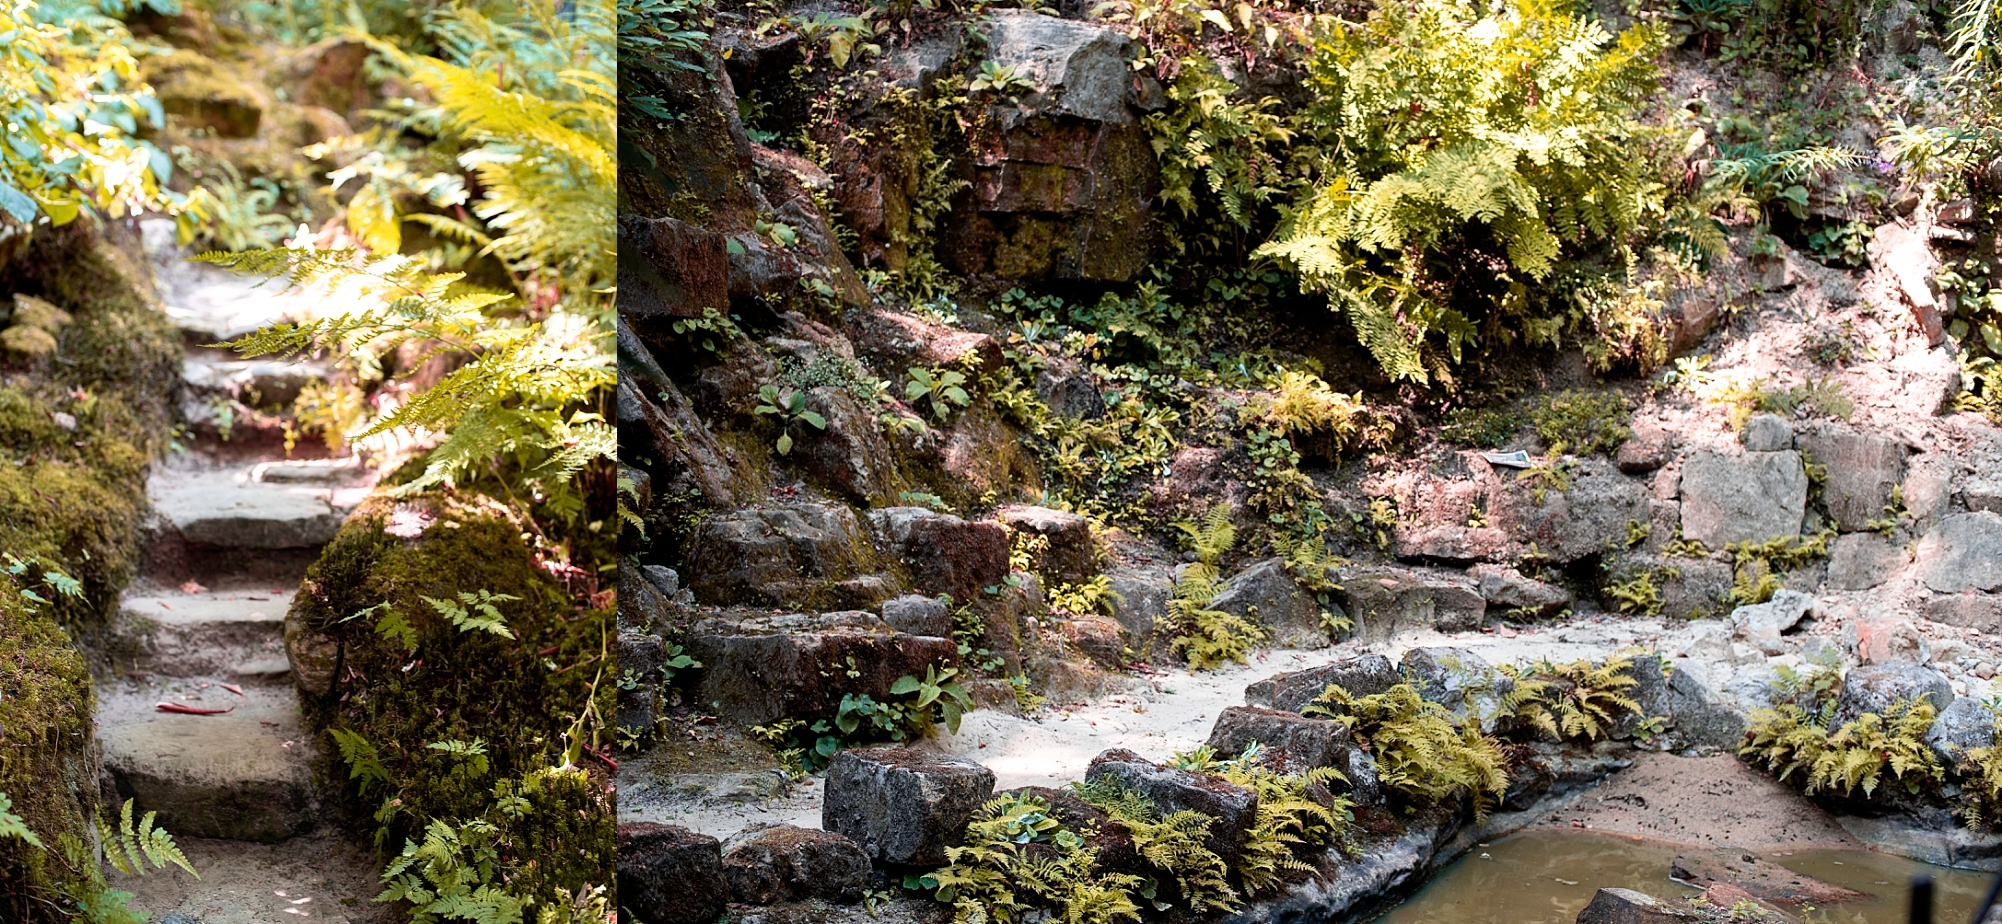 Photo of the Quarry garden and fernery at Standen House National Trust